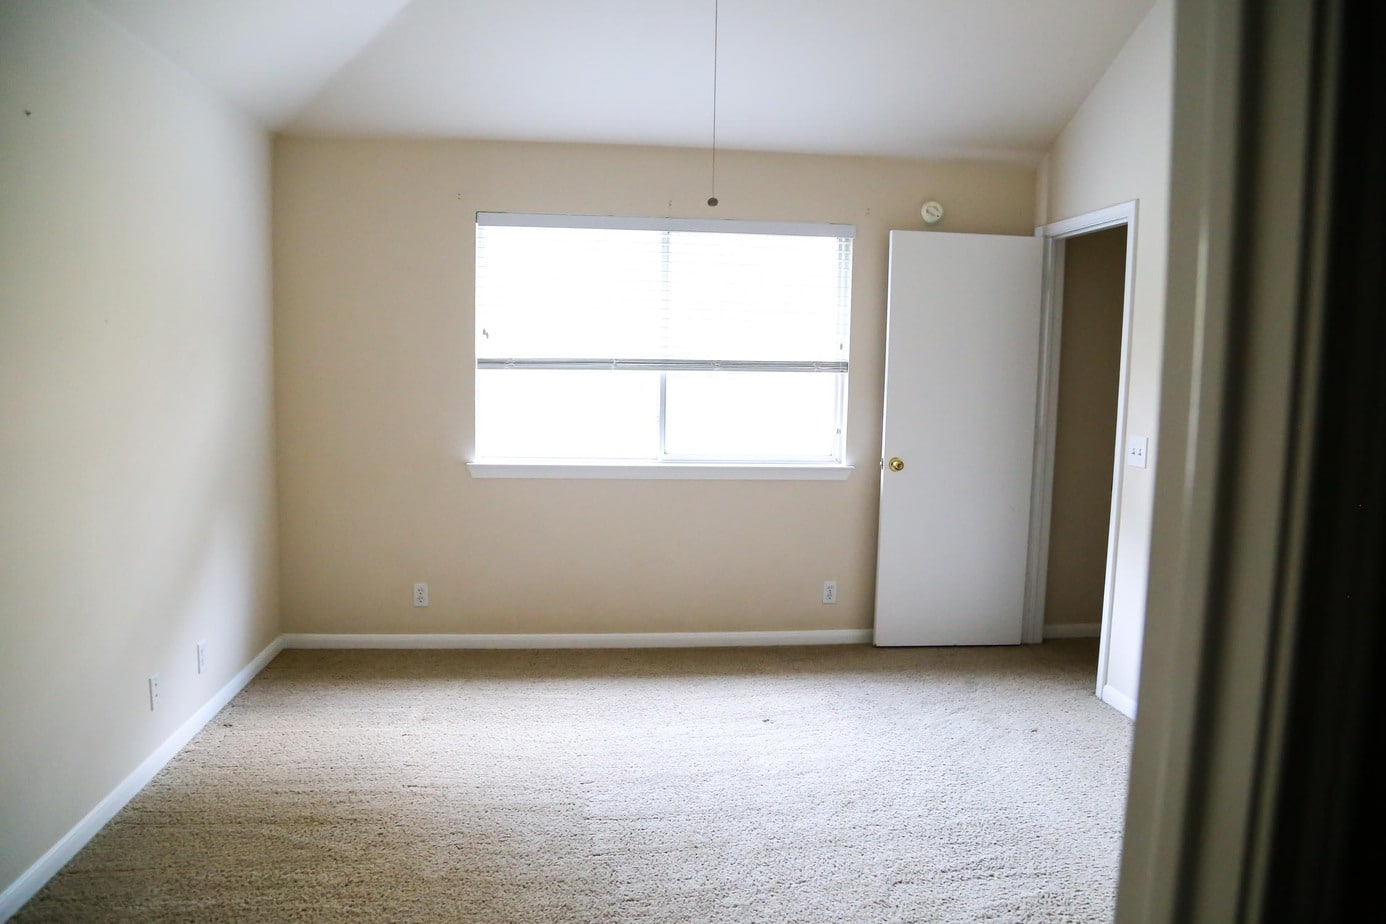 The master bedroom in the new house